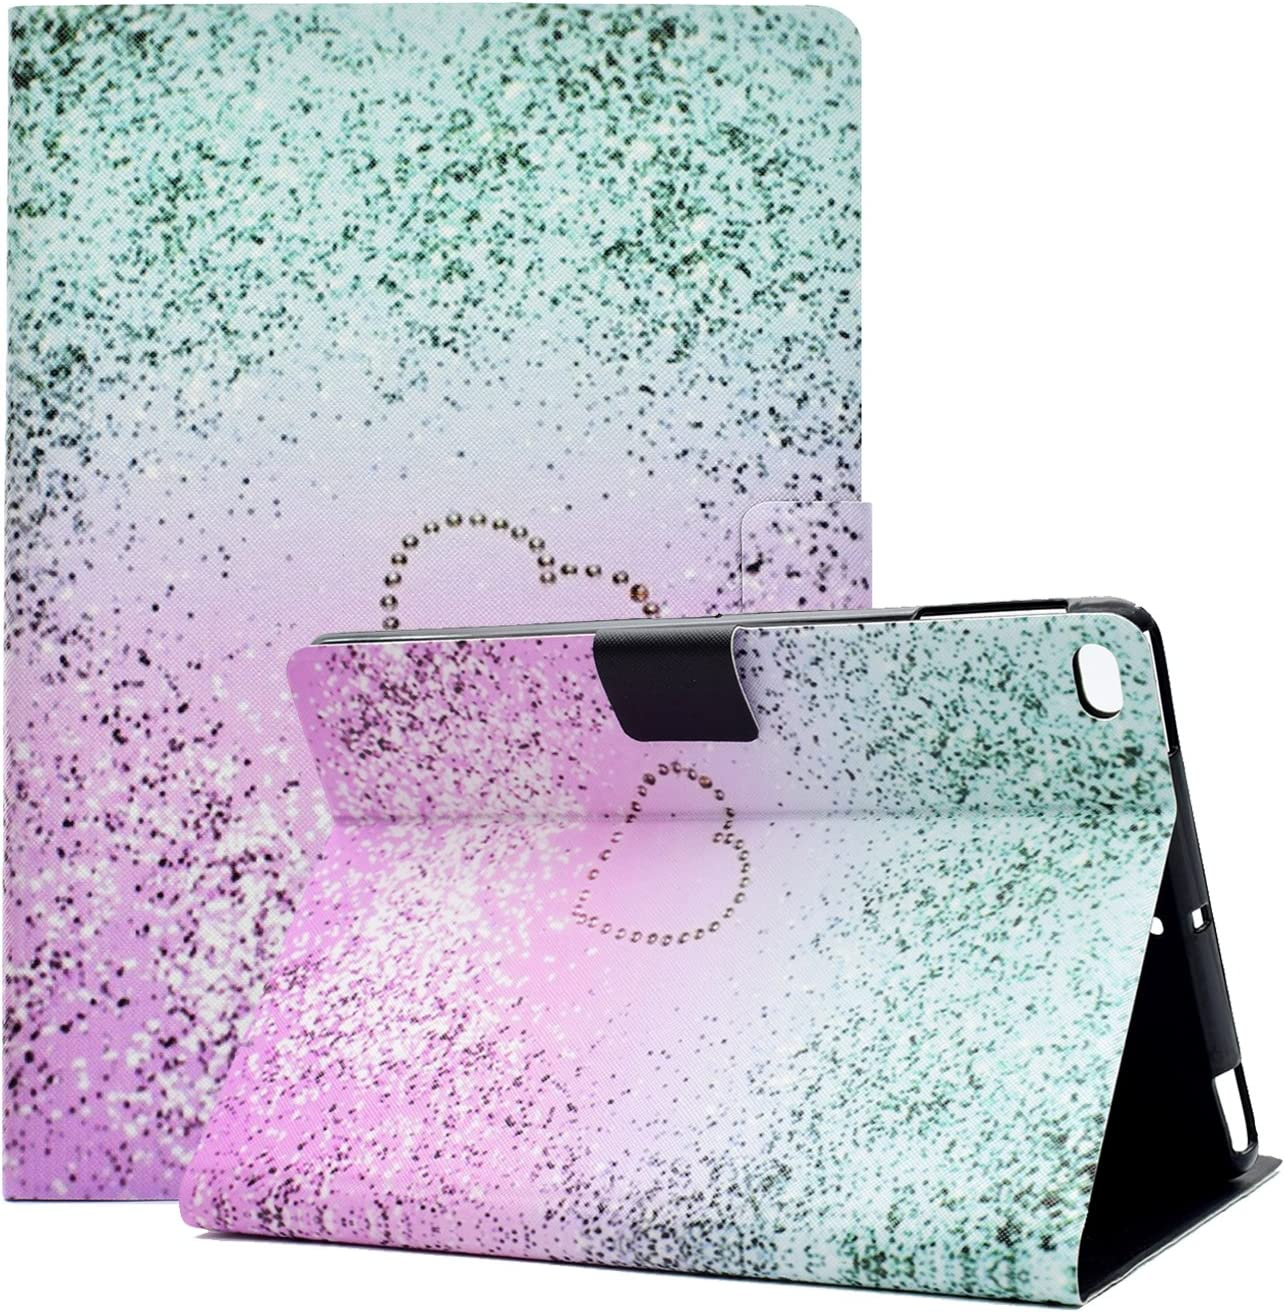 Anvas Case for iPad 9.7 2018/2017 - Slim Lightweight Smart Shell Standing Protective Cover with Auto Wake/Sleep Feature for Apple iPad 6th Gen/iPad 5th Gen 9.7 Inch Tablet,Lavender Aqua